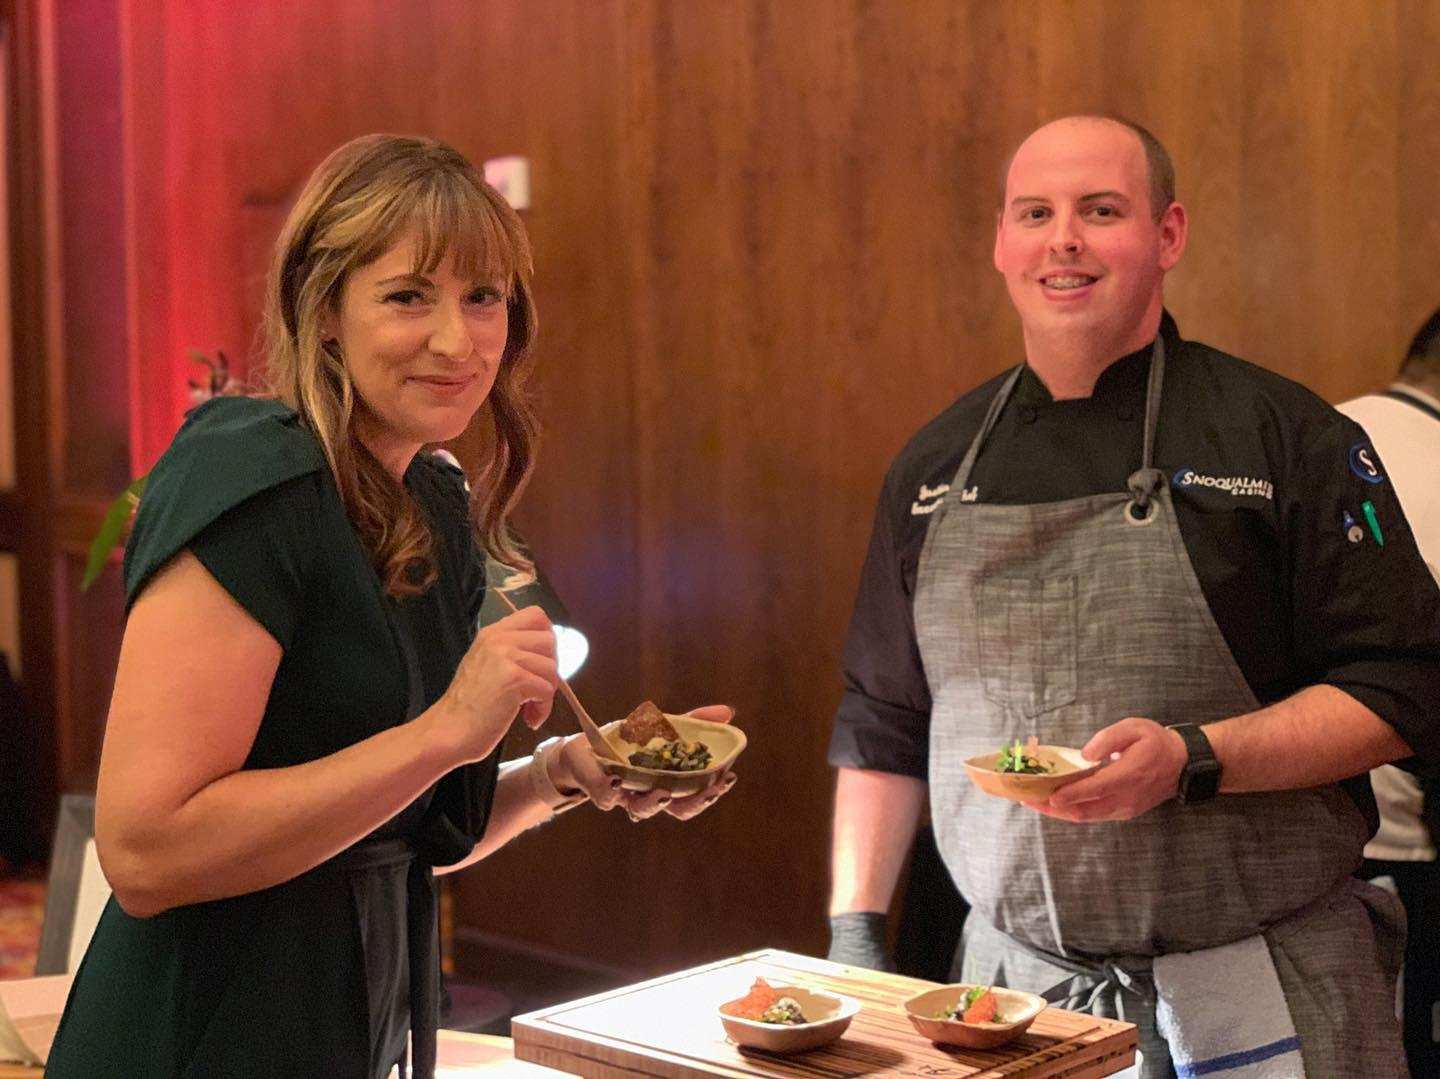 Snoqualmie Casino's culinary innovations dazzled at Taste America Seattle this month, impressing guests at both a cocktail party and gala dinner.